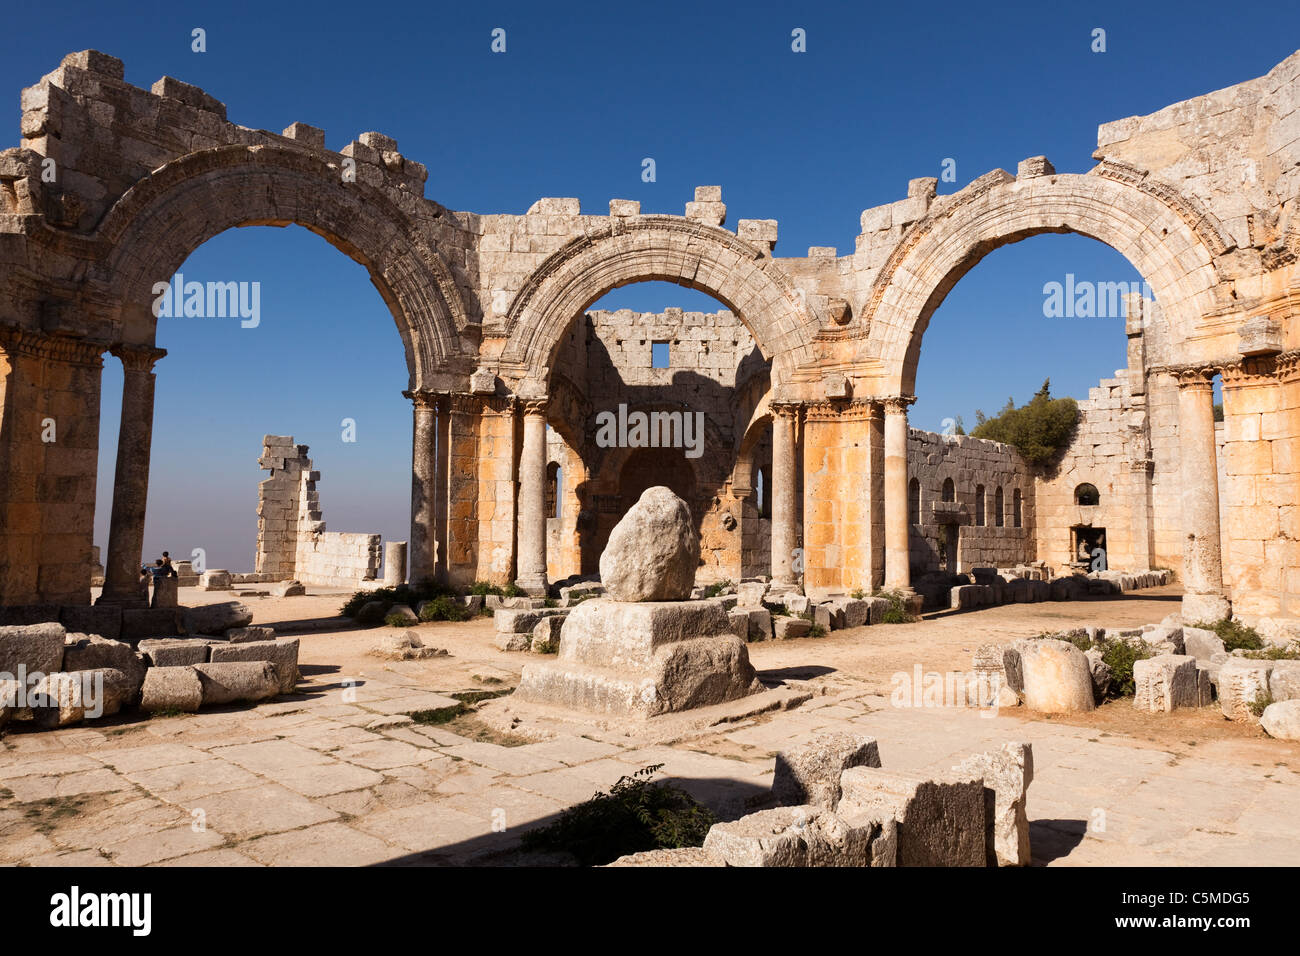 Qala'at Samaan, the Church of Saint Simeon, near Aleppo, Syria, Middle East Stock Photo